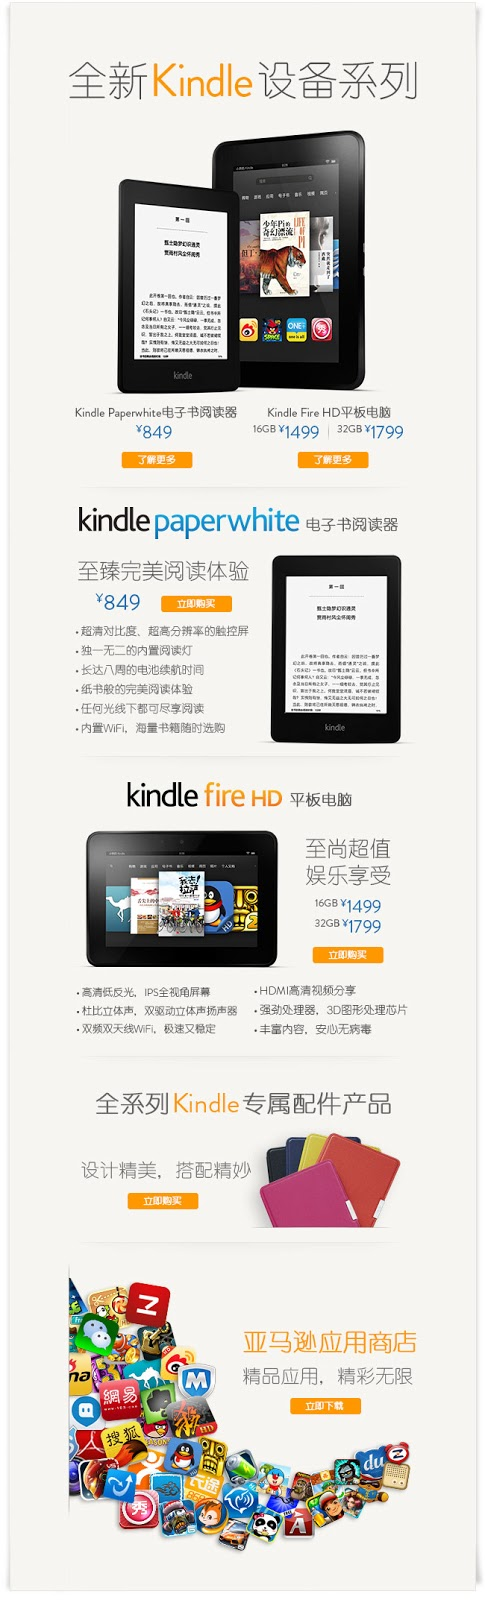 Amazon Kindle Fire tablet and Amazon Kindle Paperwhite e-reader launched in China